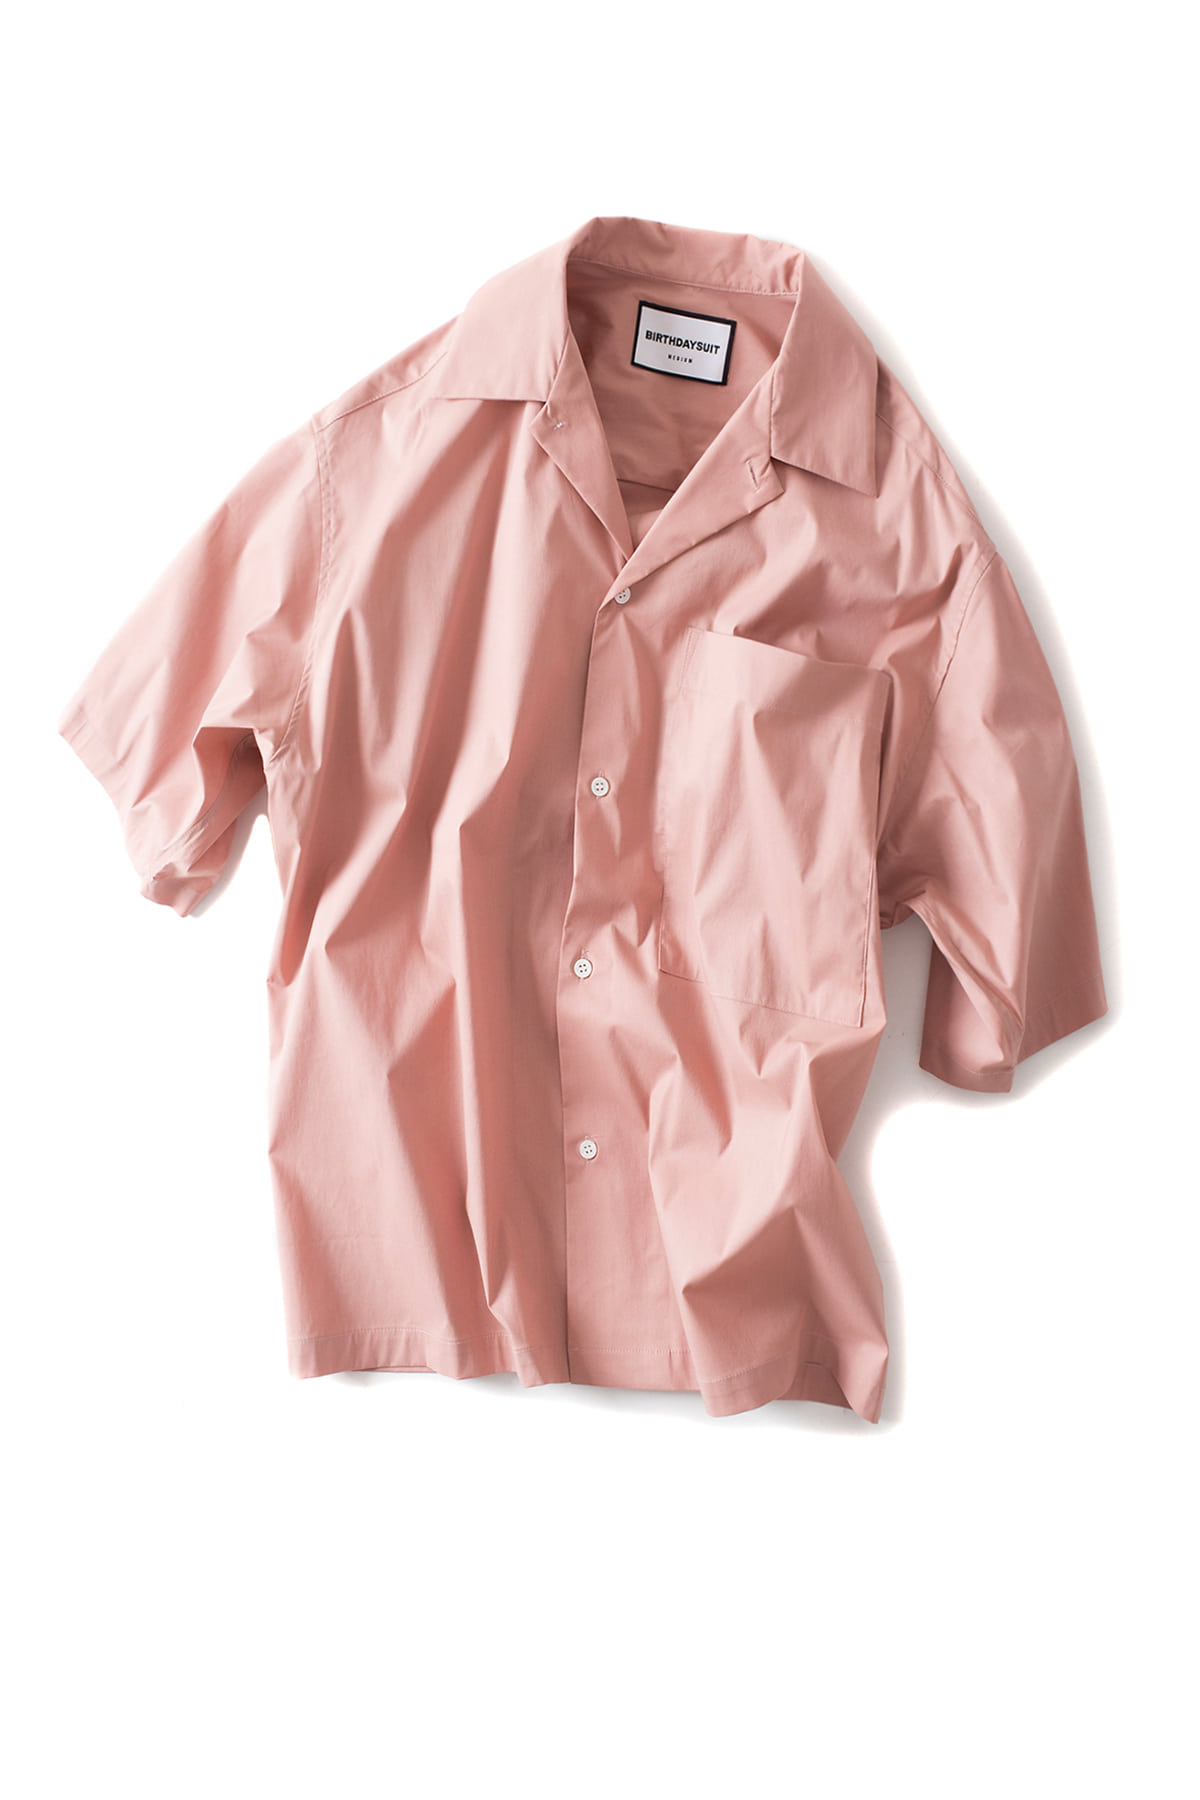 BIRTHDAYSUIT : Oversized HS Shirt(Antique Pink)